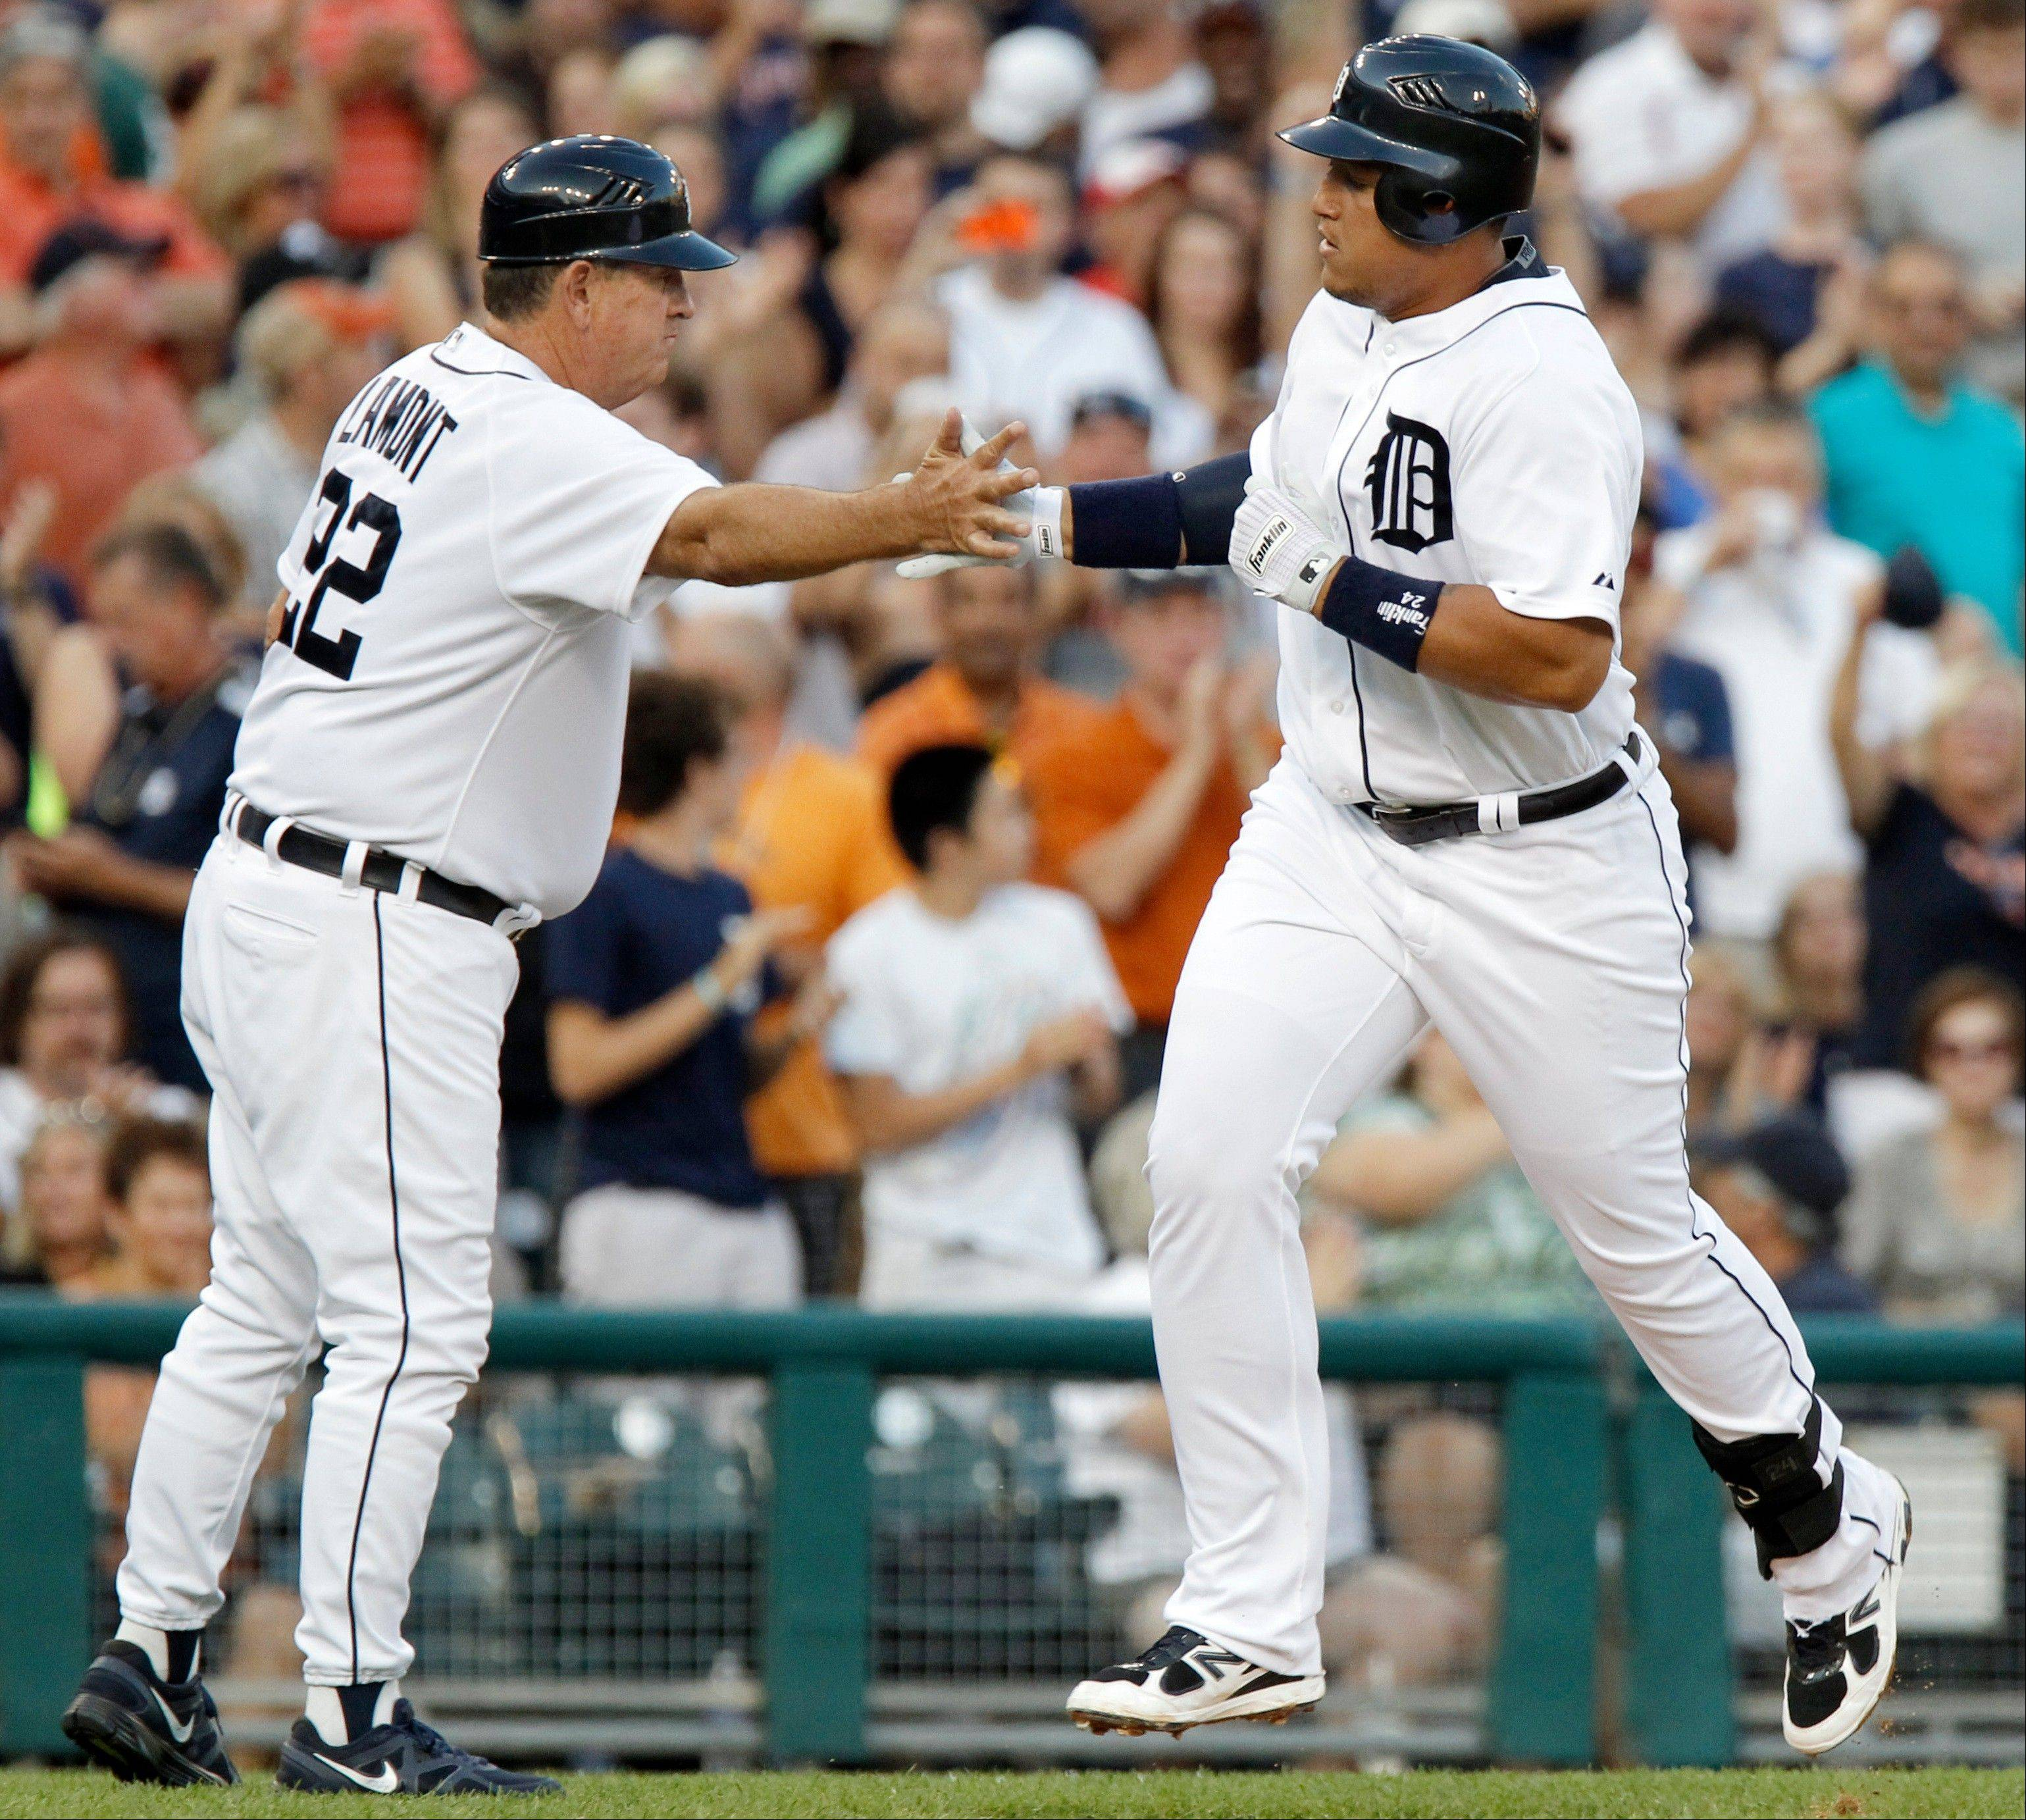 Tigers third base coach Gene Lamont congratulates Miguel Cabrera on his solo home run in the fourth inning Tuesday at home against New York.